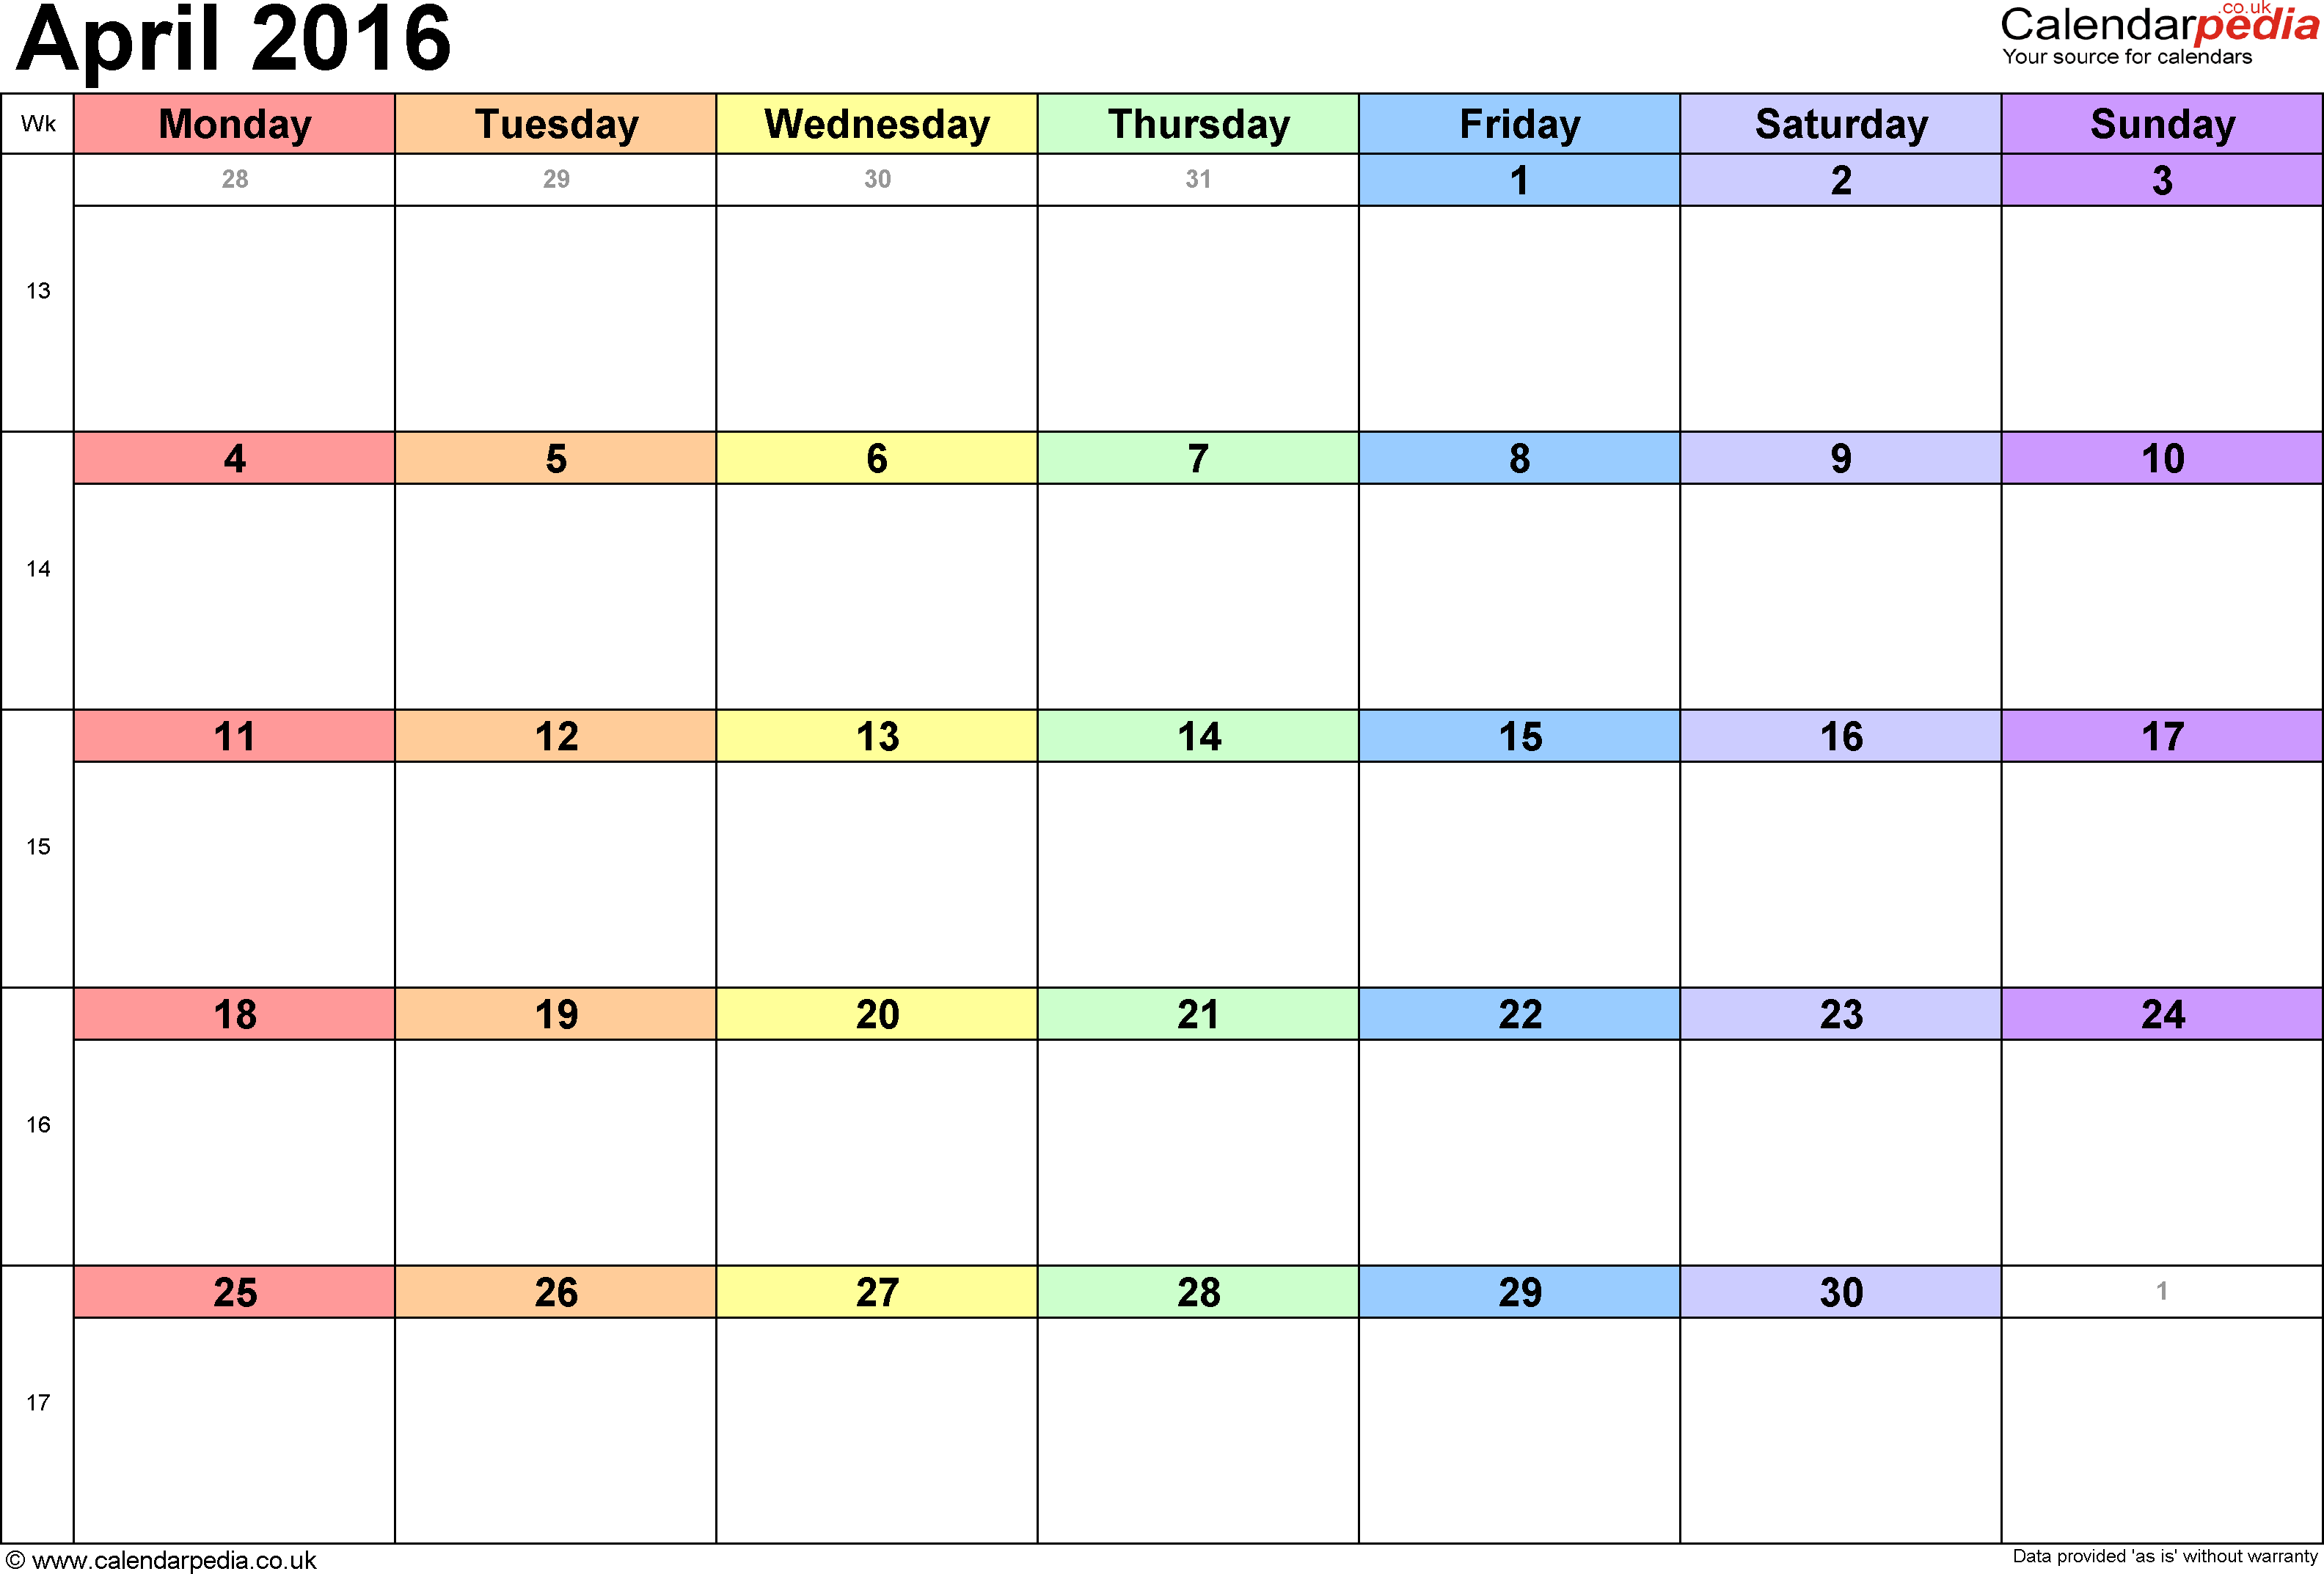 Calendar April 2016, landscape orientation, 1 page, with UK bank holidays and week numbers